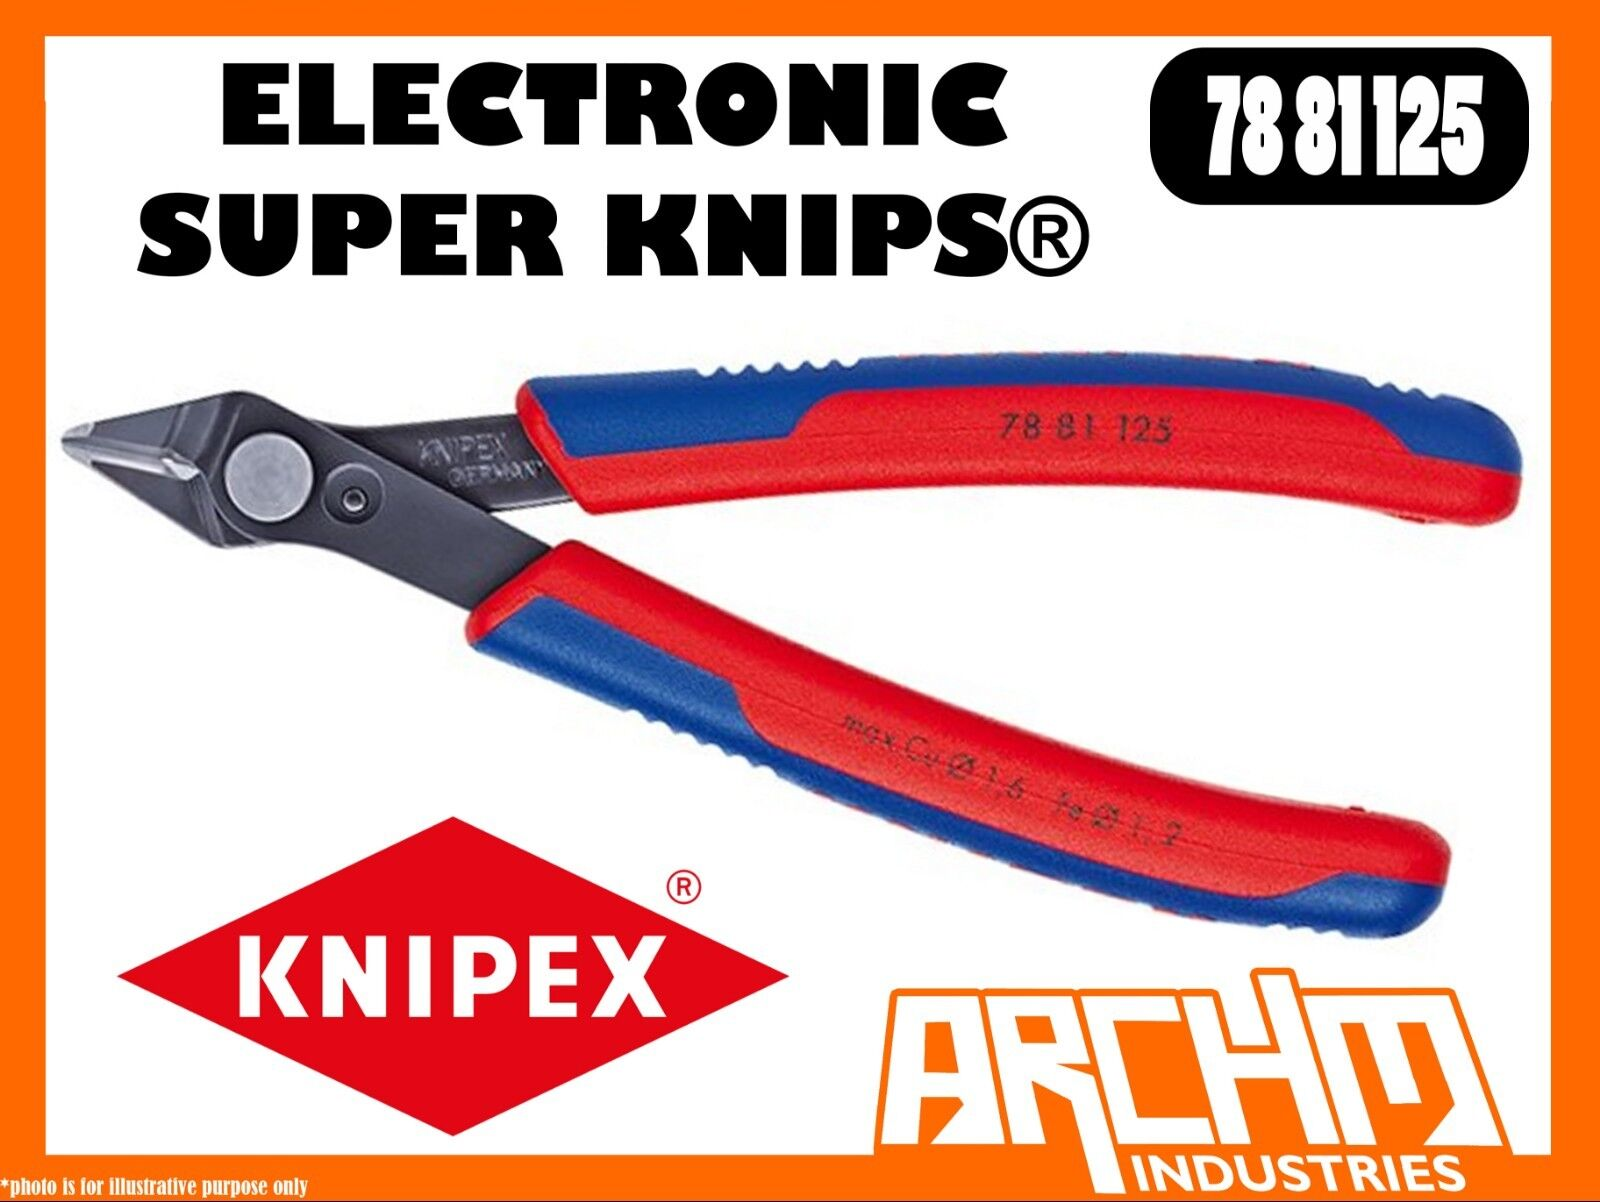 KNIPEX 7881125 - ELECTRONIC SUPER KNIPS® 125MM - PLIERS CUTTING EDGES BURNISHED